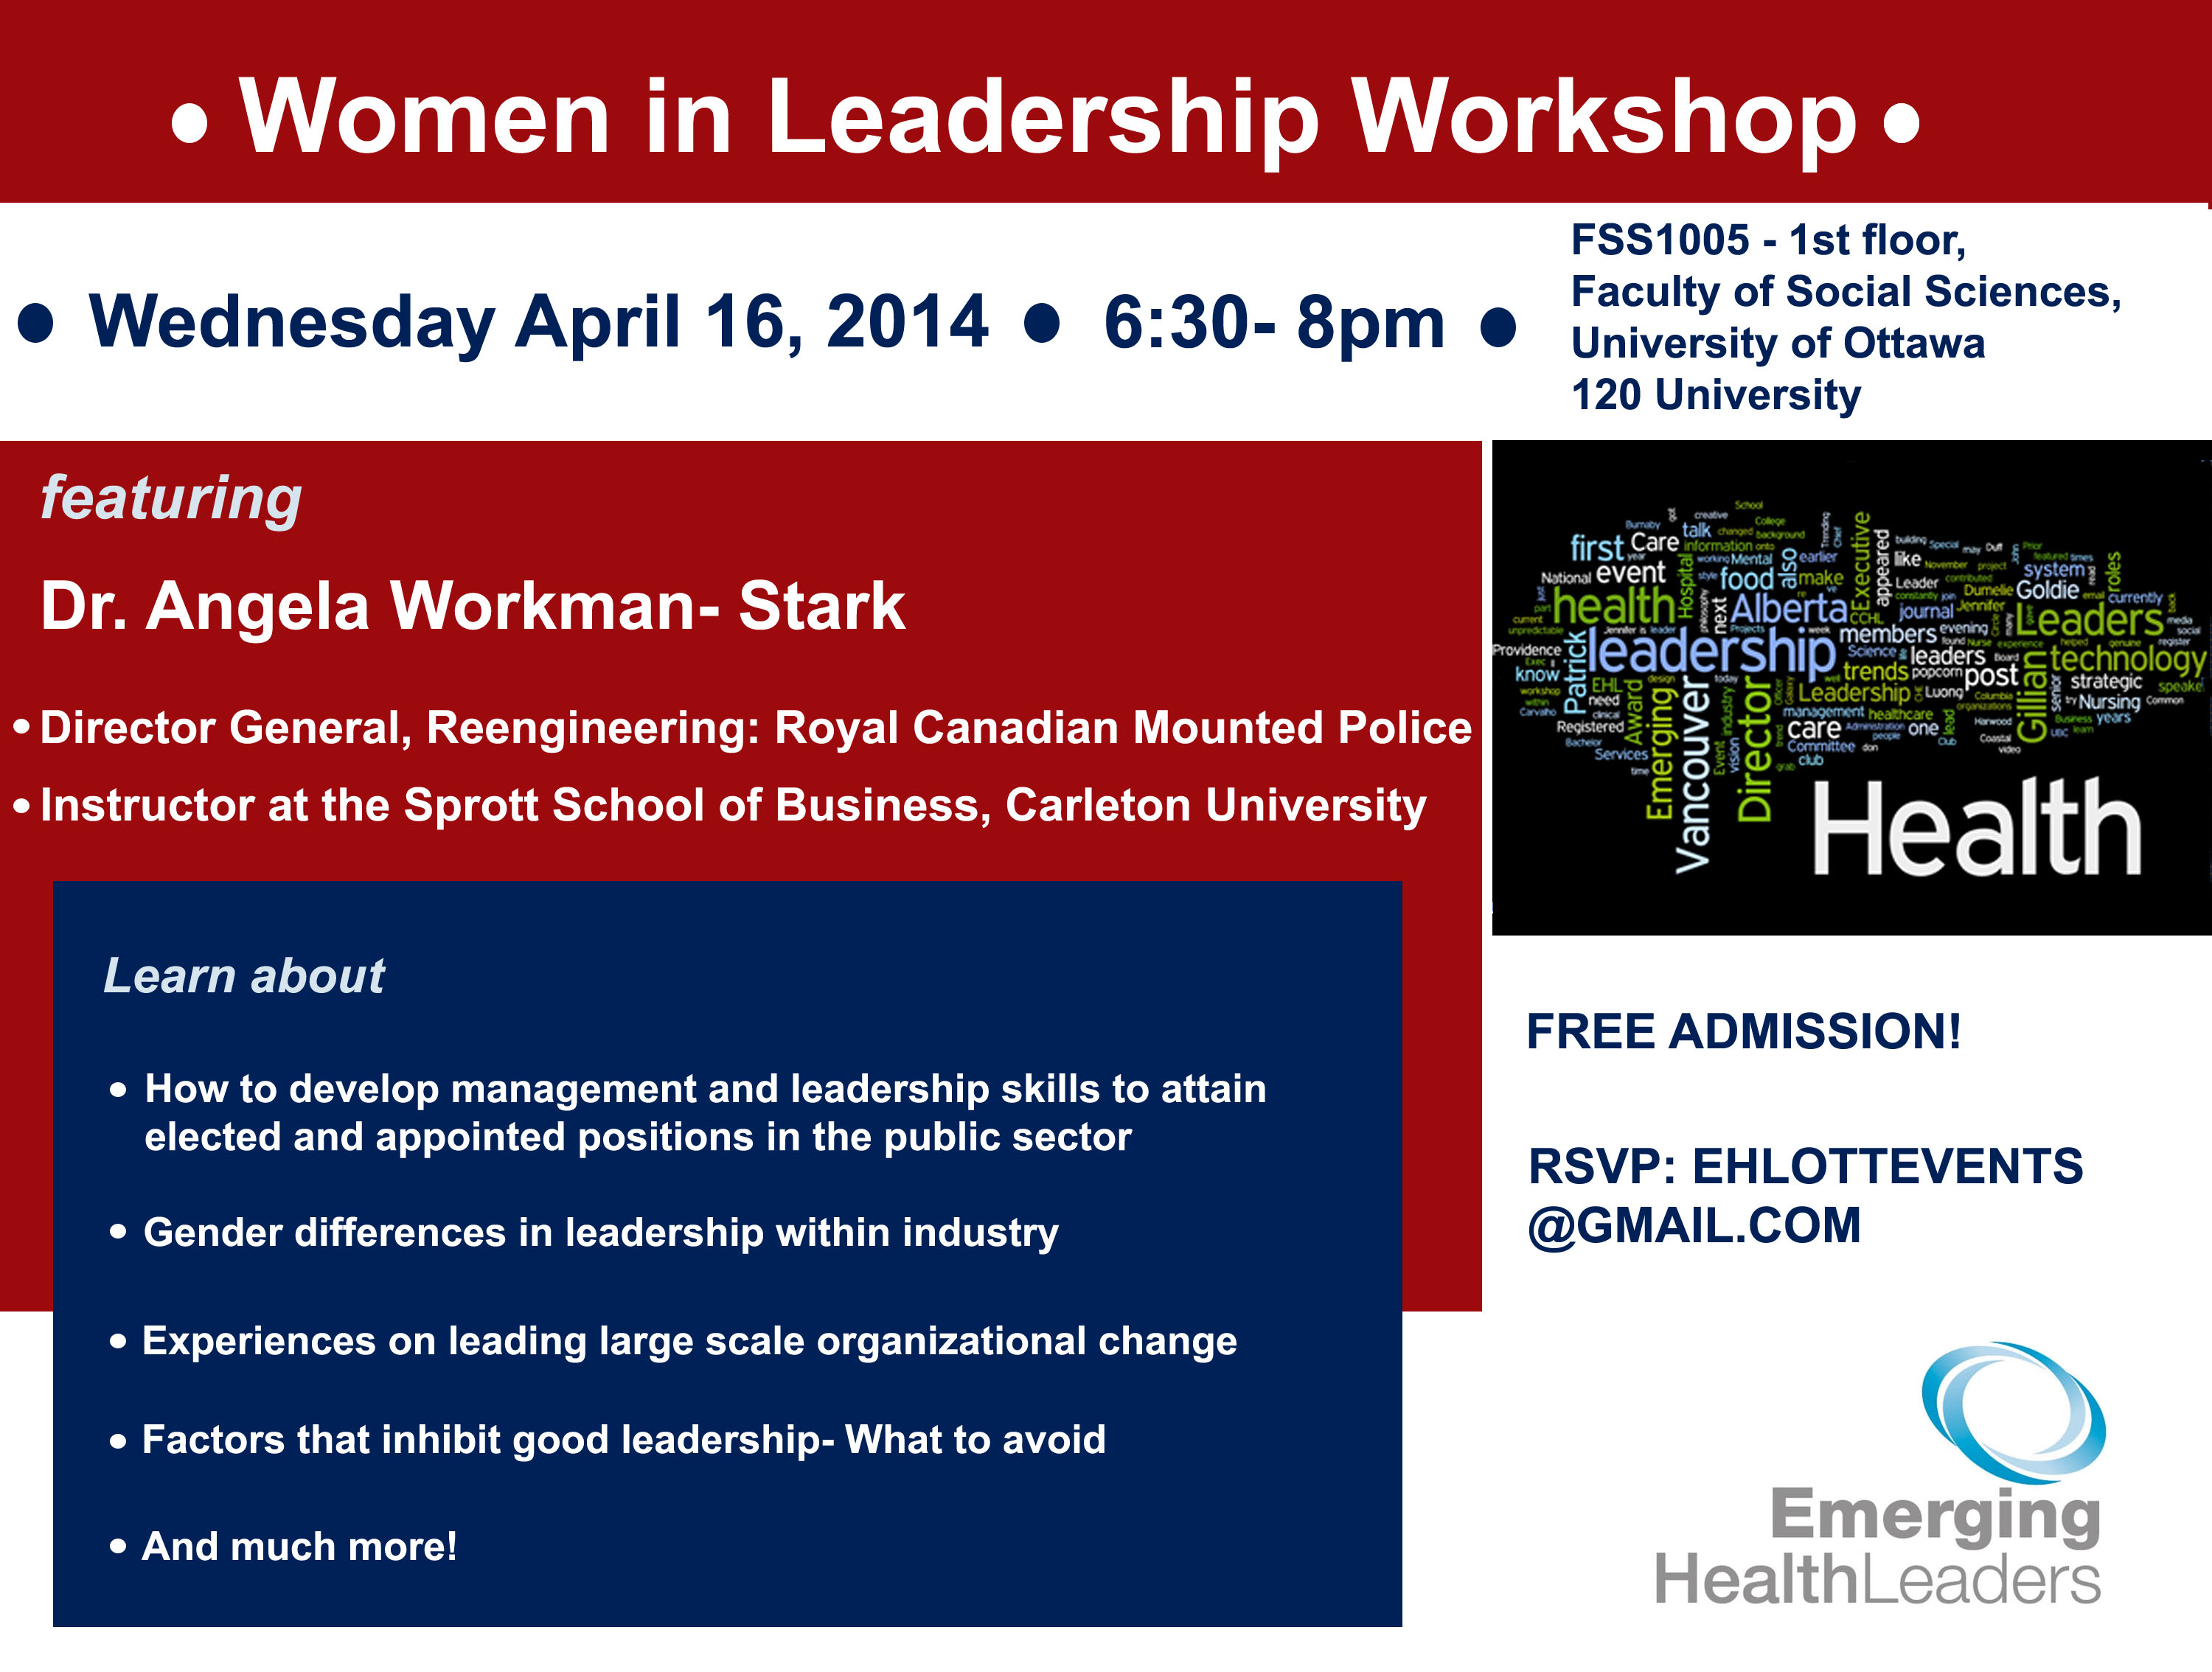 Women in Leadership Workshop with Dr. Angela Workman-Stark